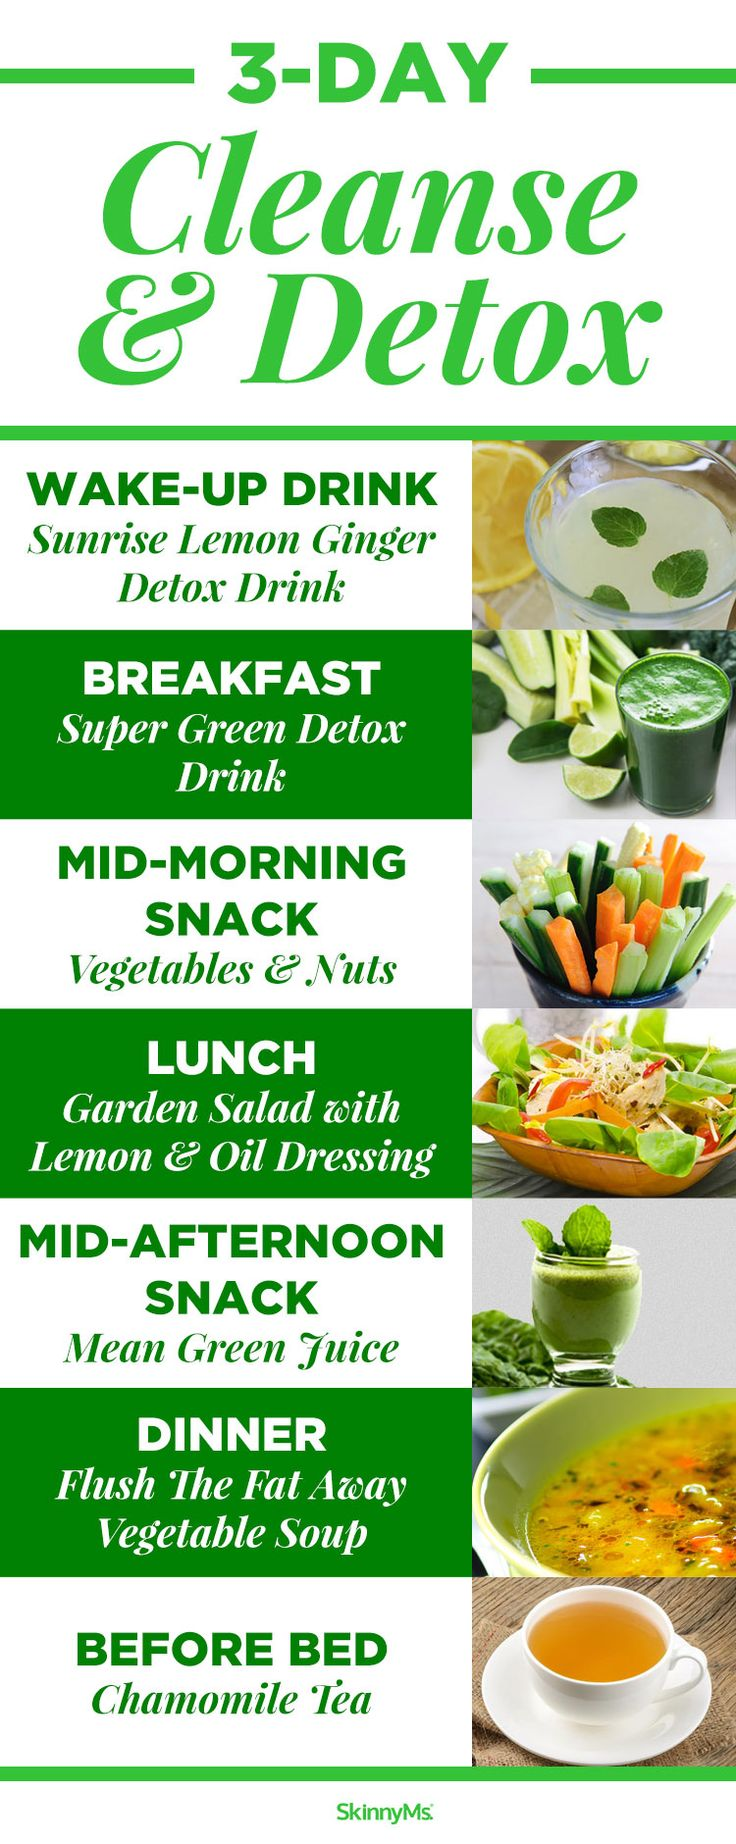 9584 best Skinny Ms. Eats images on Pinterest | Skinny ms, Recipes and Healthy foods